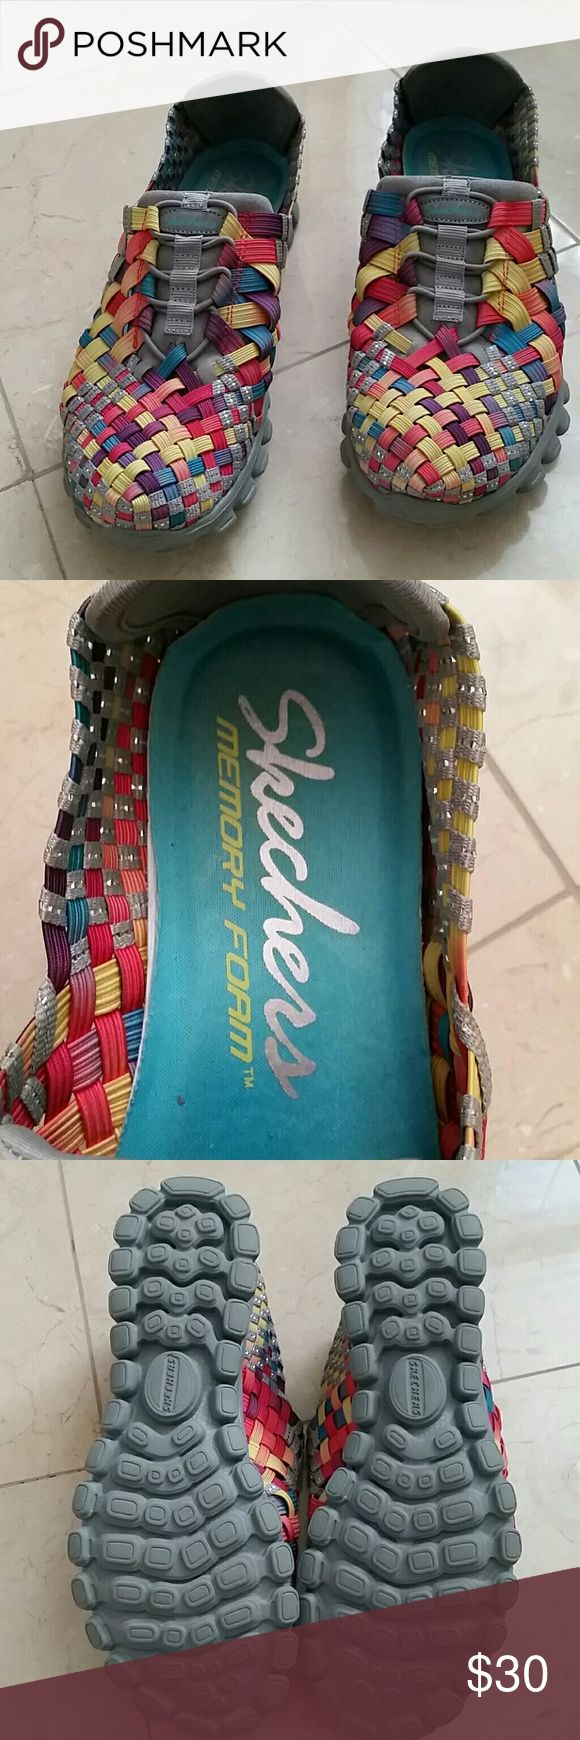 SKECHERS WALKING SHOES SKECHERS EZ FLEX  MEMORY FORM WALKING SHOES /SLIP ON  SIZE 7 MY FAVORITE WALKING SHOE/ BUT THESE ARE TO BIG ON ME ! I'M A 7/7.5 AND THEY SLIP!  BRIGHT MULTI COLORED  SO COMFORTABLE!  NEVER WORN! Skechers Shoes Athletic Shoes